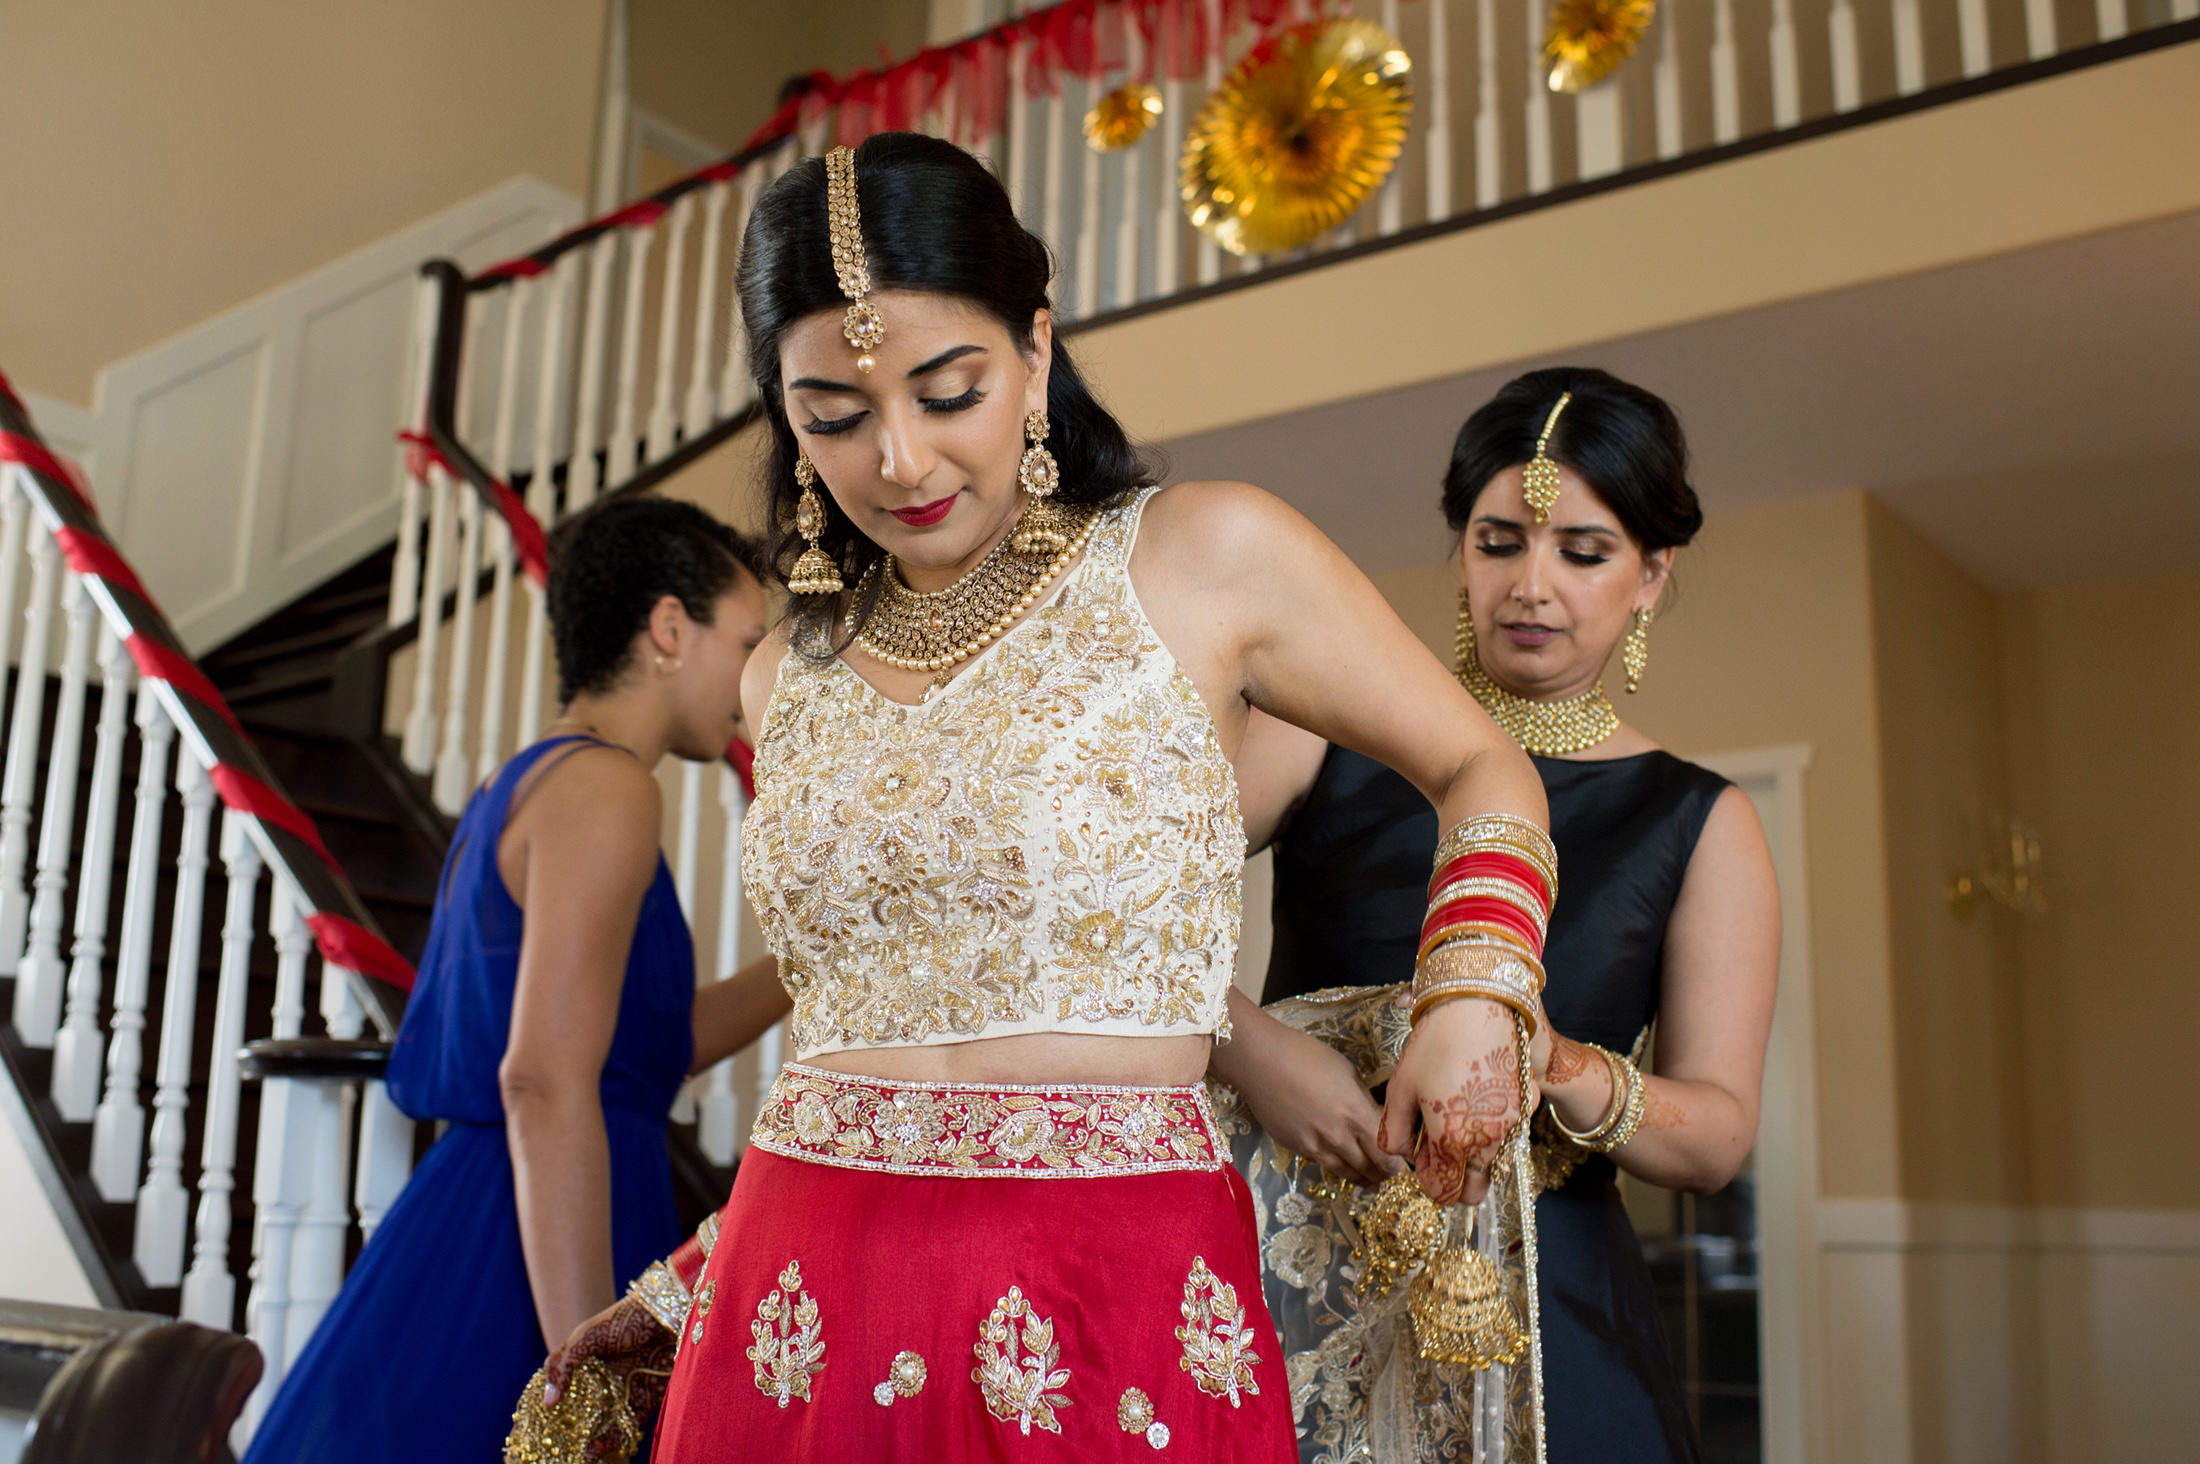 Edmonton_wedding_photographers_enjoy_center_wedding_Kiran_faisal_10.jpg